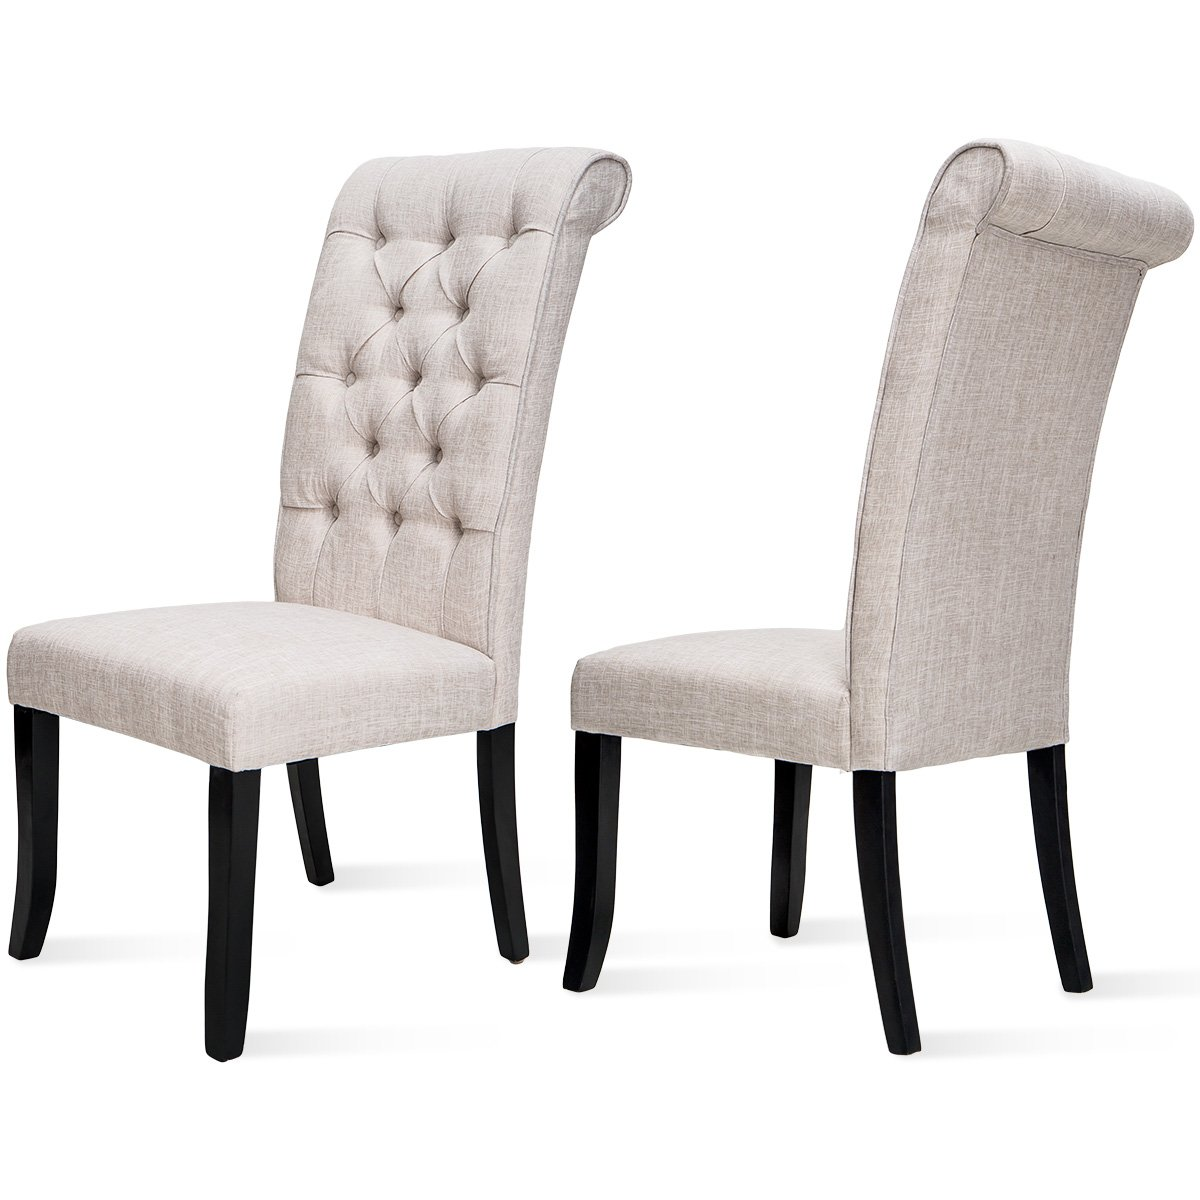 Merax Fabric Dining Chairs, Set of 2 Leisure Padded Tufted Parsons Armless Chair with Solid Wood Legs, Beige